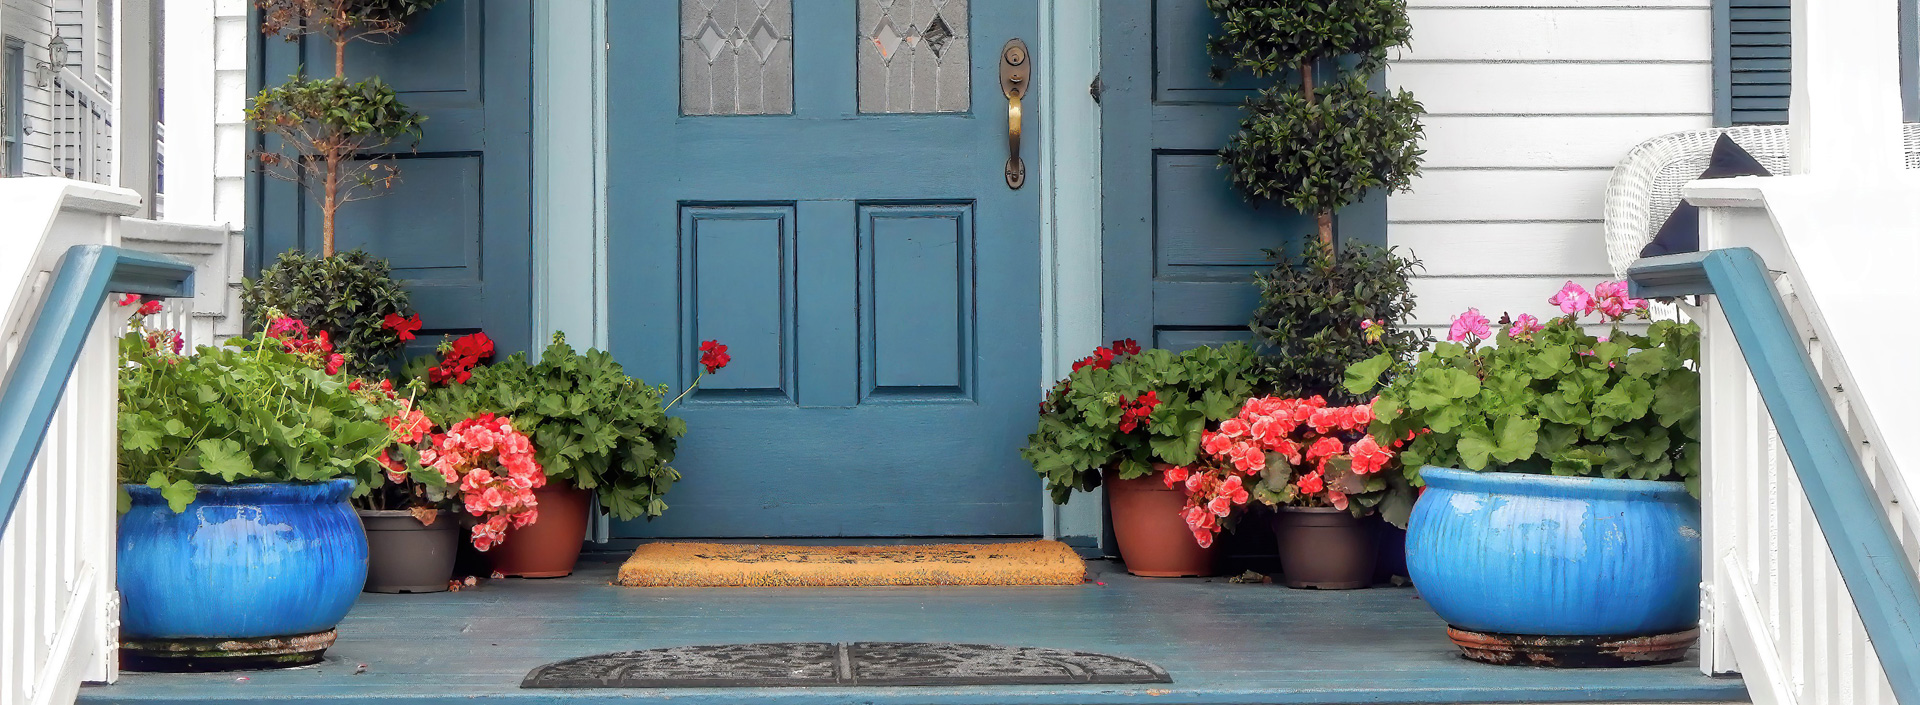 14 Simple Yet Practical Small Front Porch Ideas